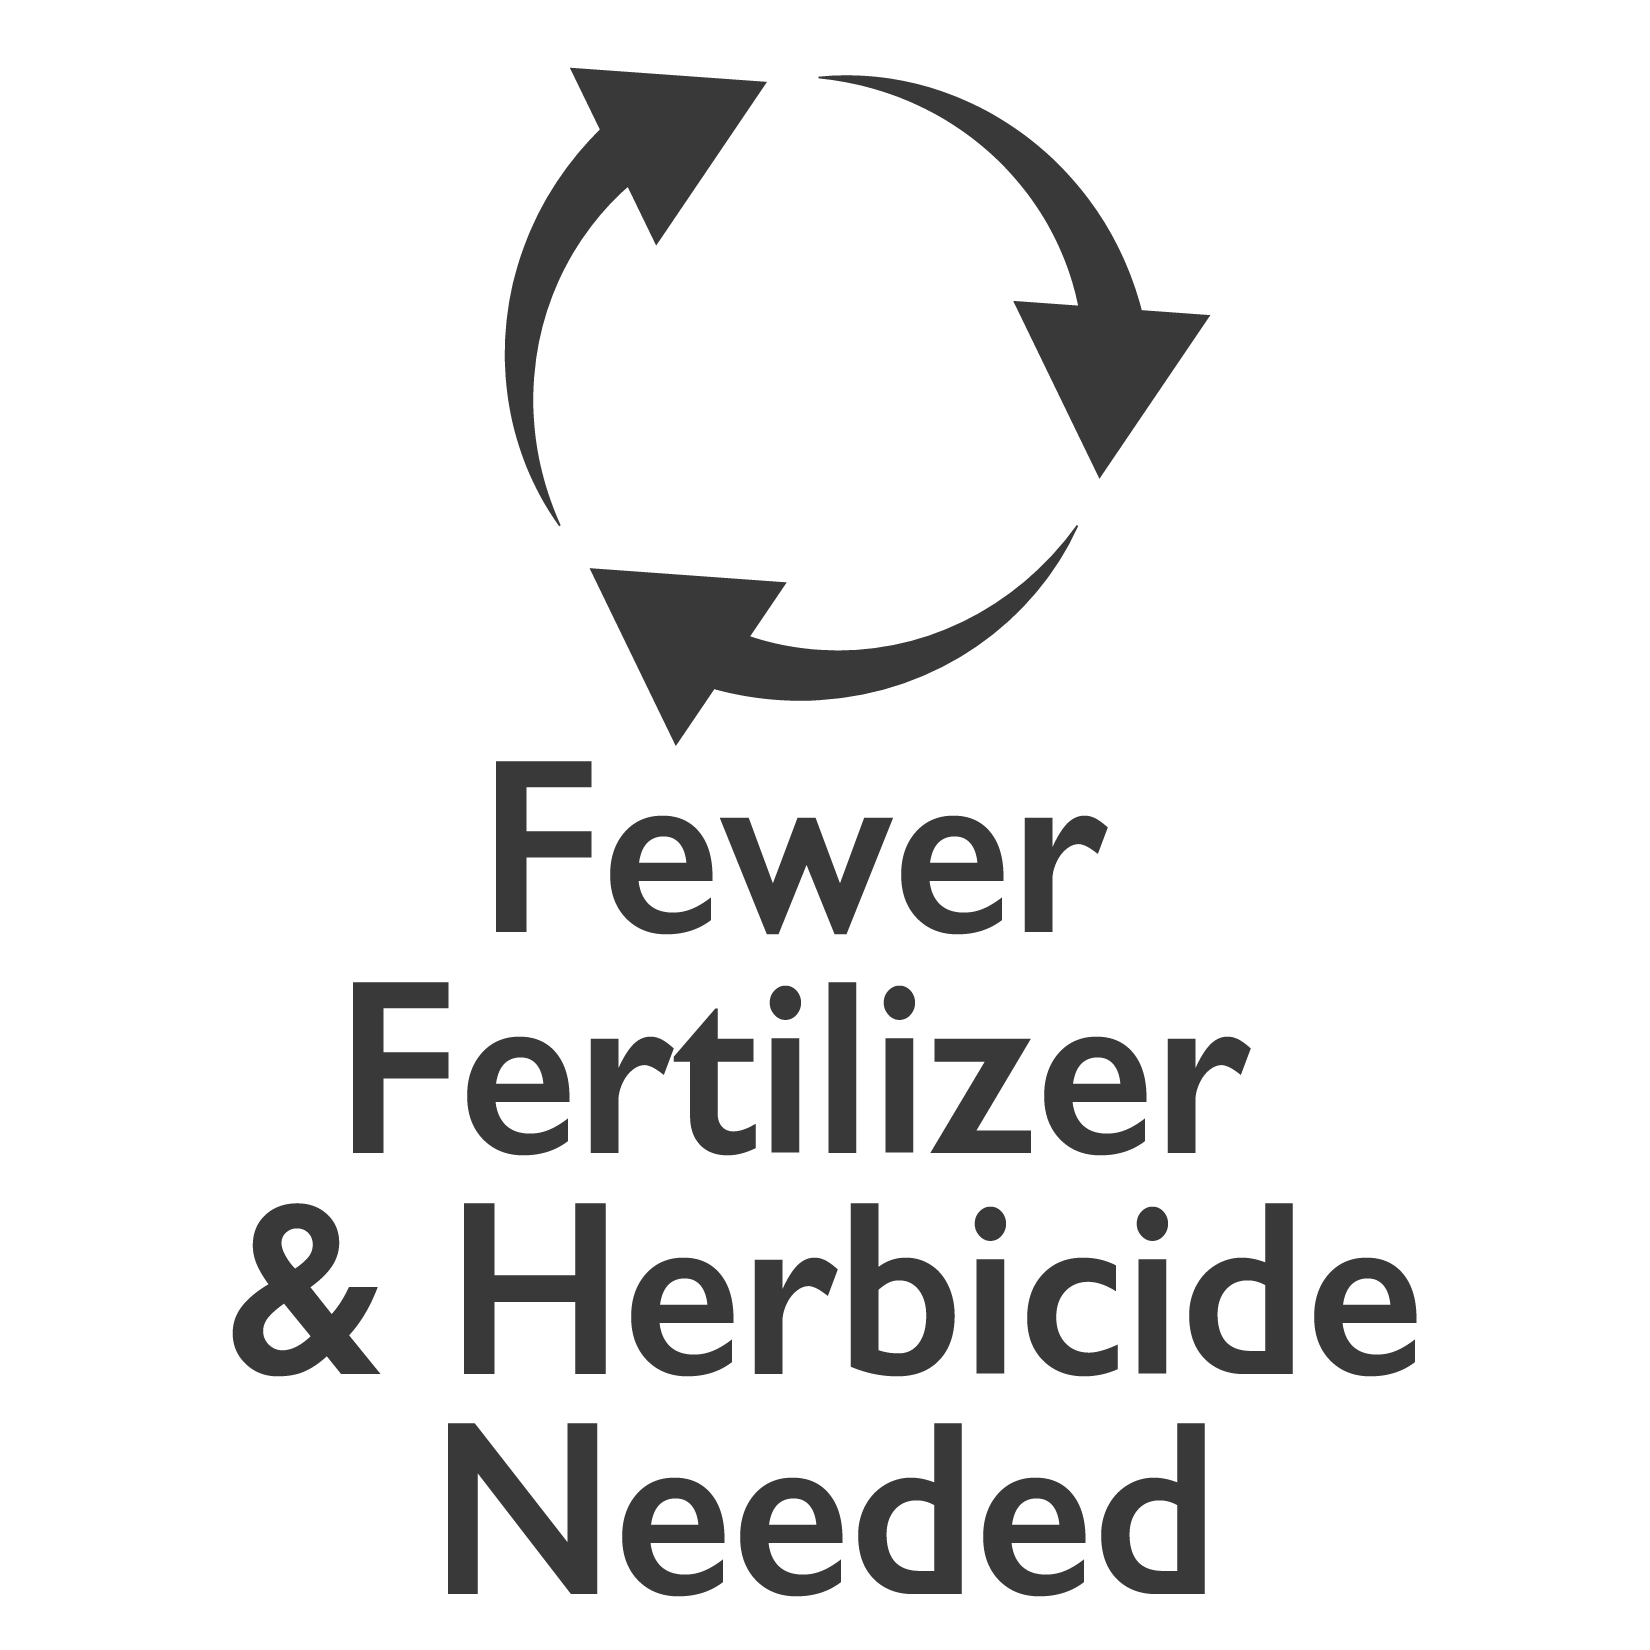 fewer fertilizer and herbicide needed